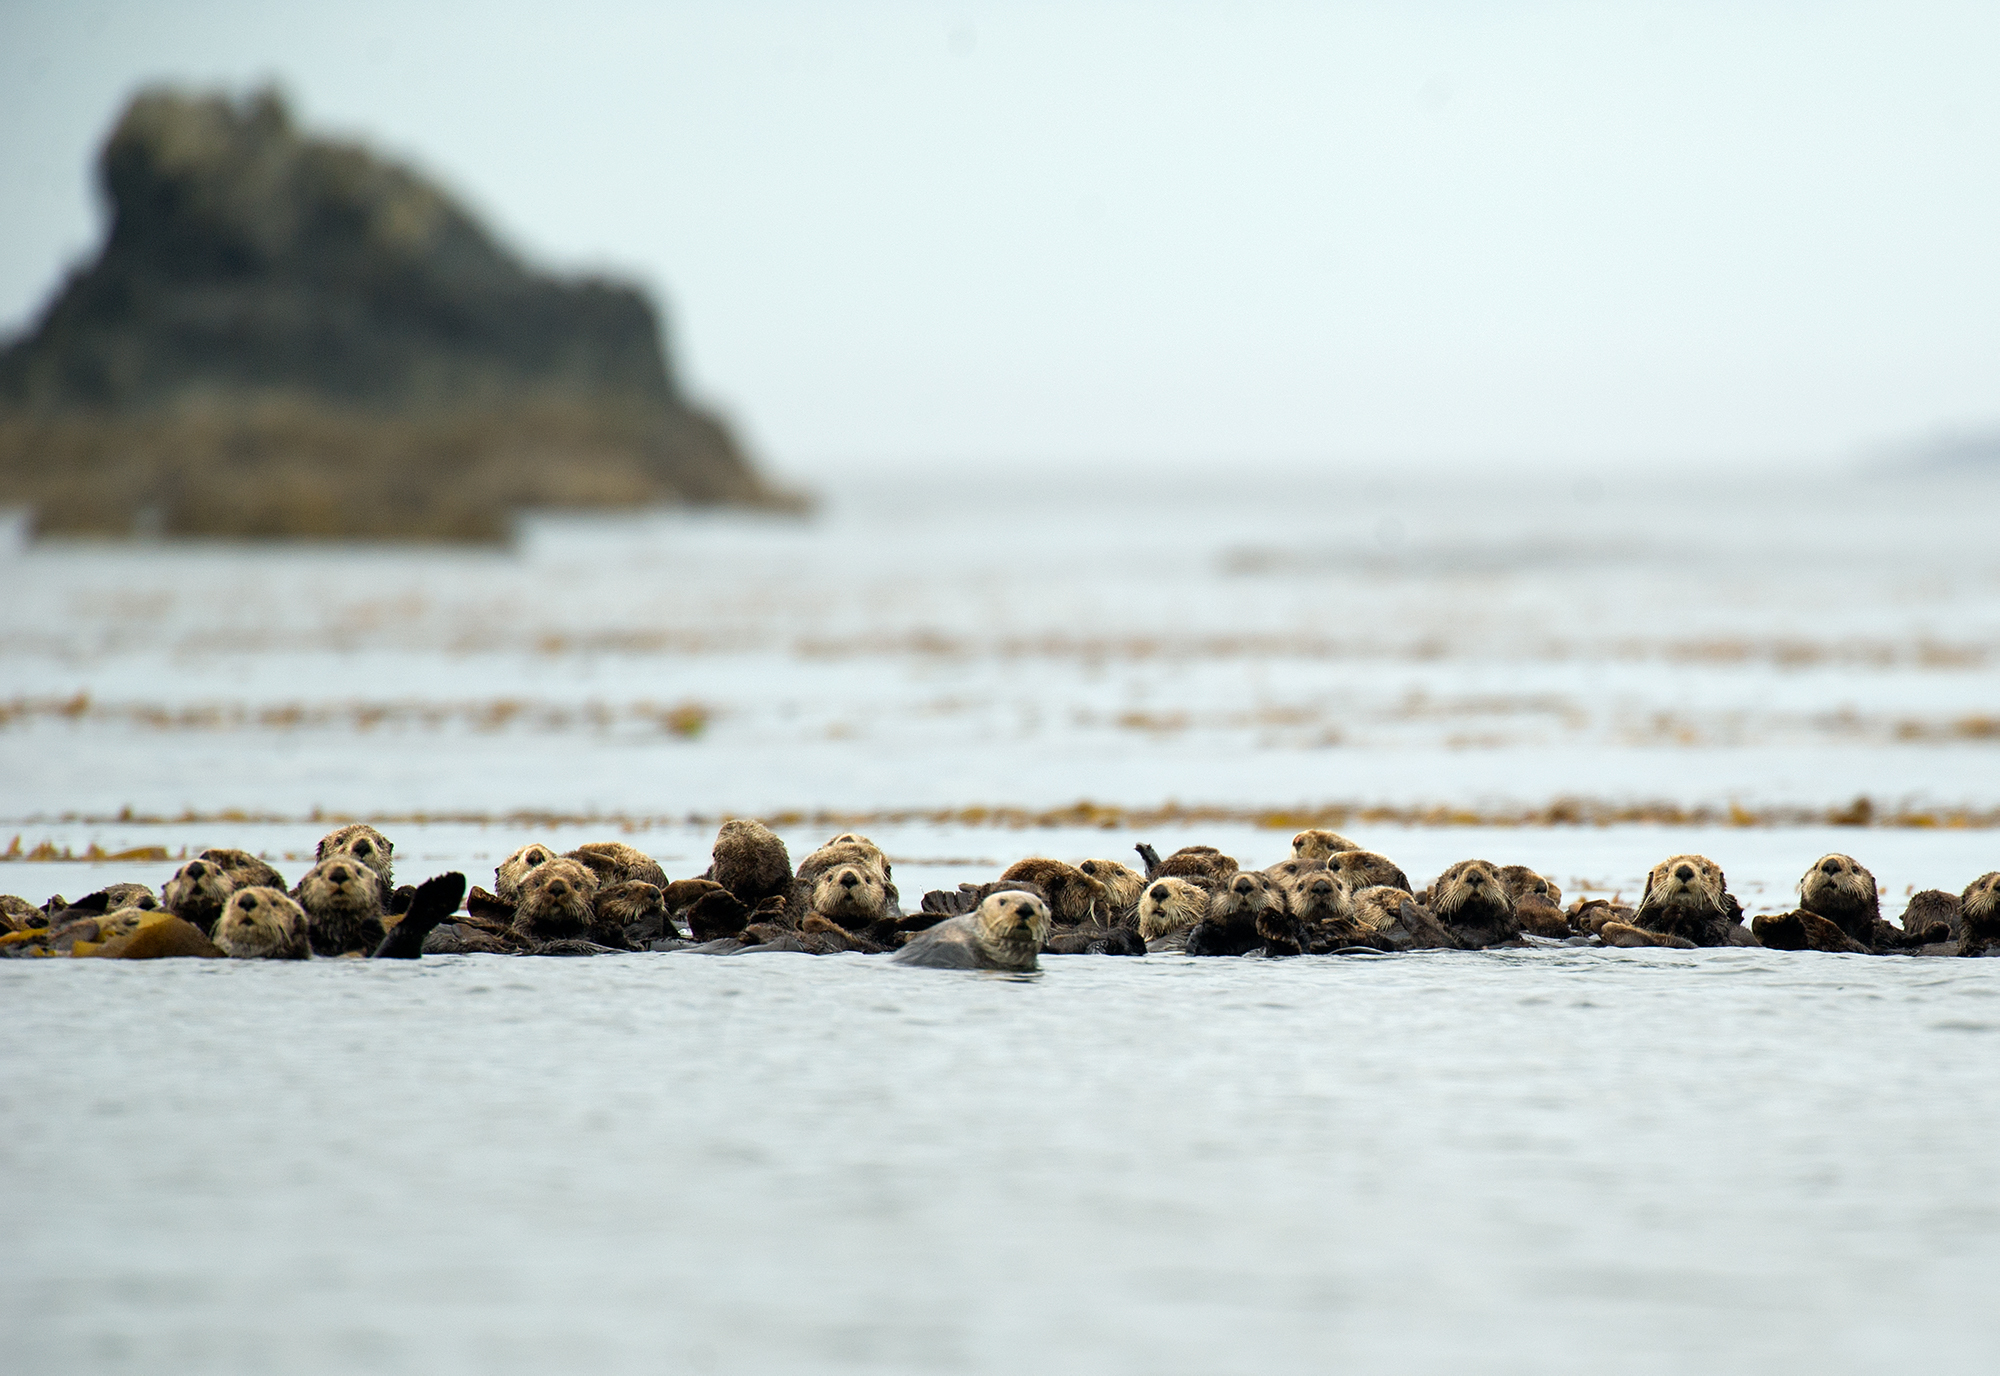 Sea otters often convene in large groups called rafts. Their population on the B.C. coast has grown from 89 in the early 1970s to just over 8,000 today. (Isabelle Groc)